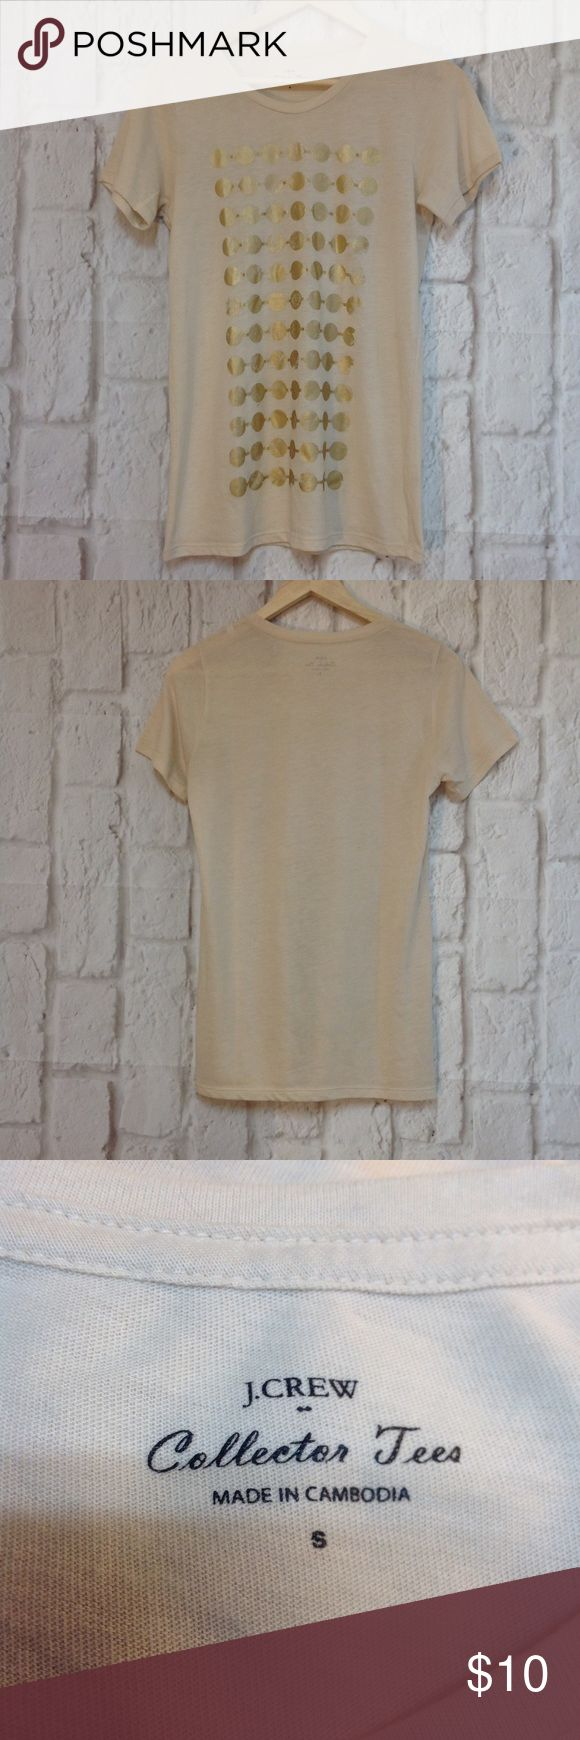 J crew collectors tee shirt Soft beige tee with gold dots. Like new condition J. Crew Tops Tees - Short Sleeve